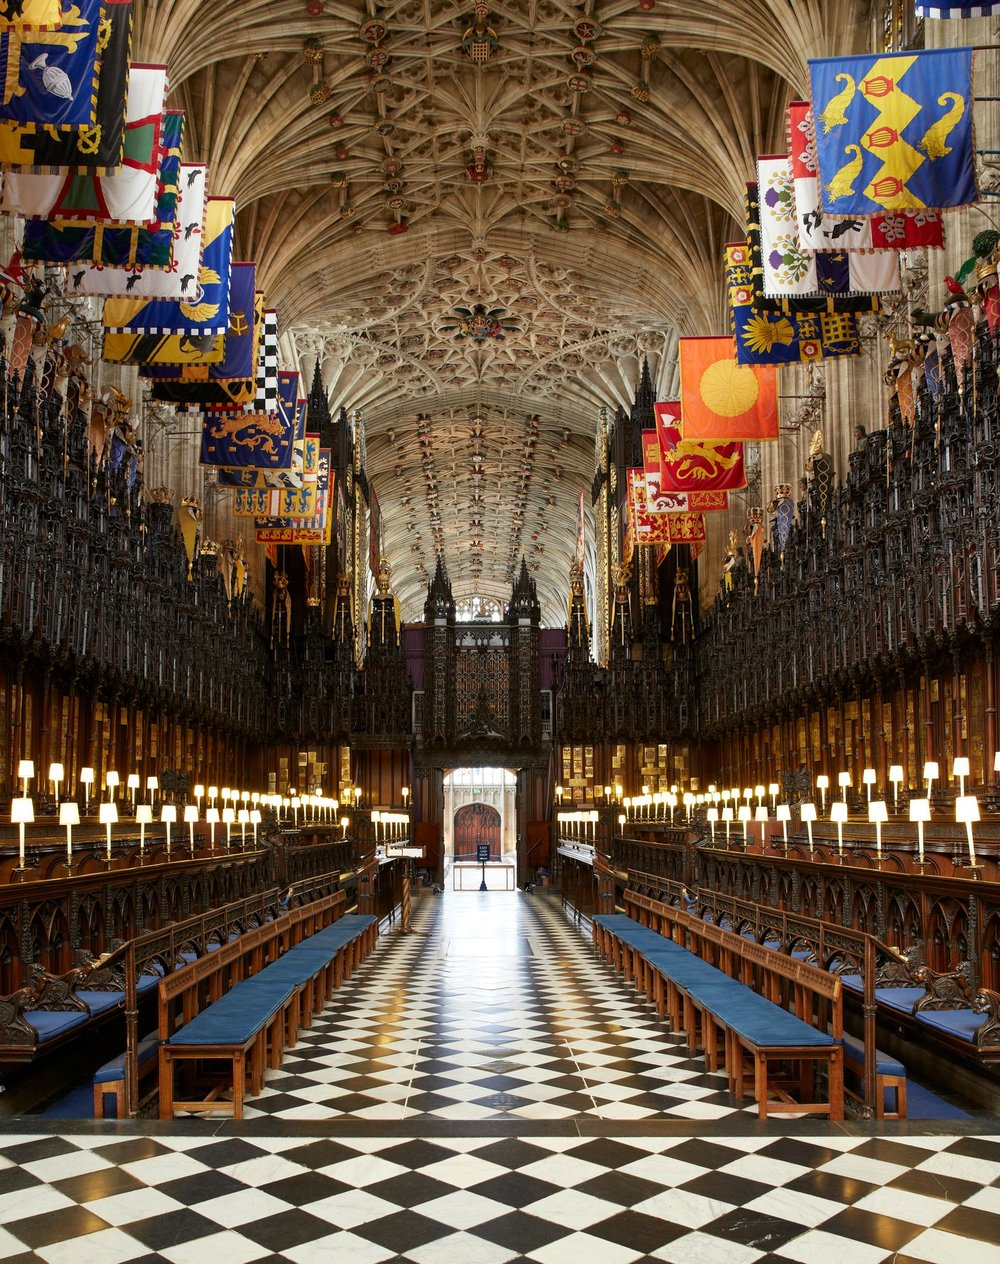 Inside the quire of St George's Chapel at Windsor Castle. Windsor, England.